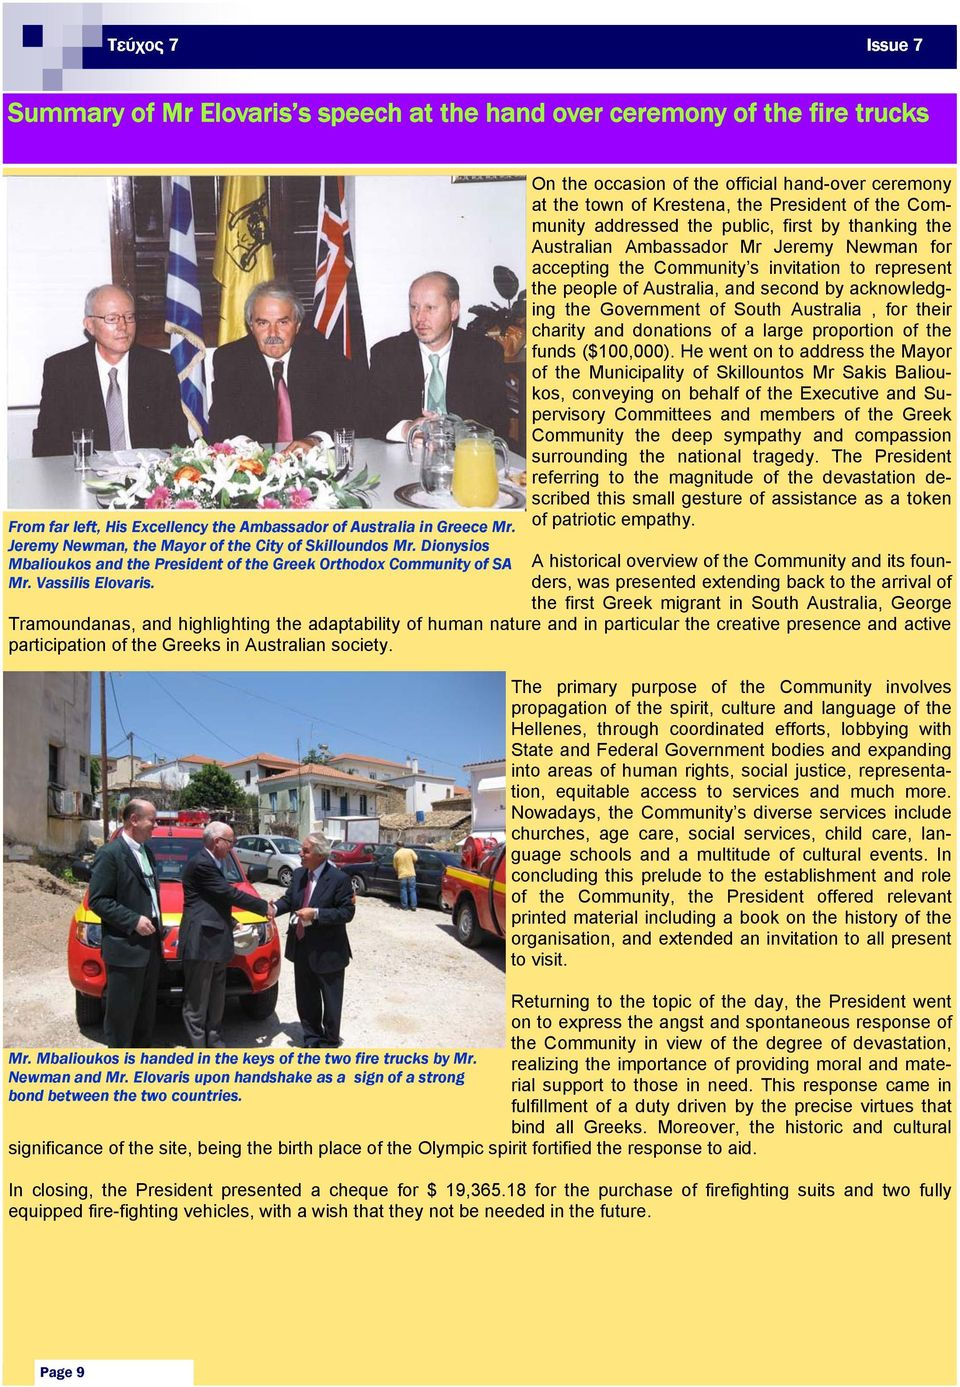 On the occasion of the official hand-over ceremony at the town of Krestena, the President of the Community addressed the public, first by thanking the Australian Ambassador Mr Jeremy Newman for